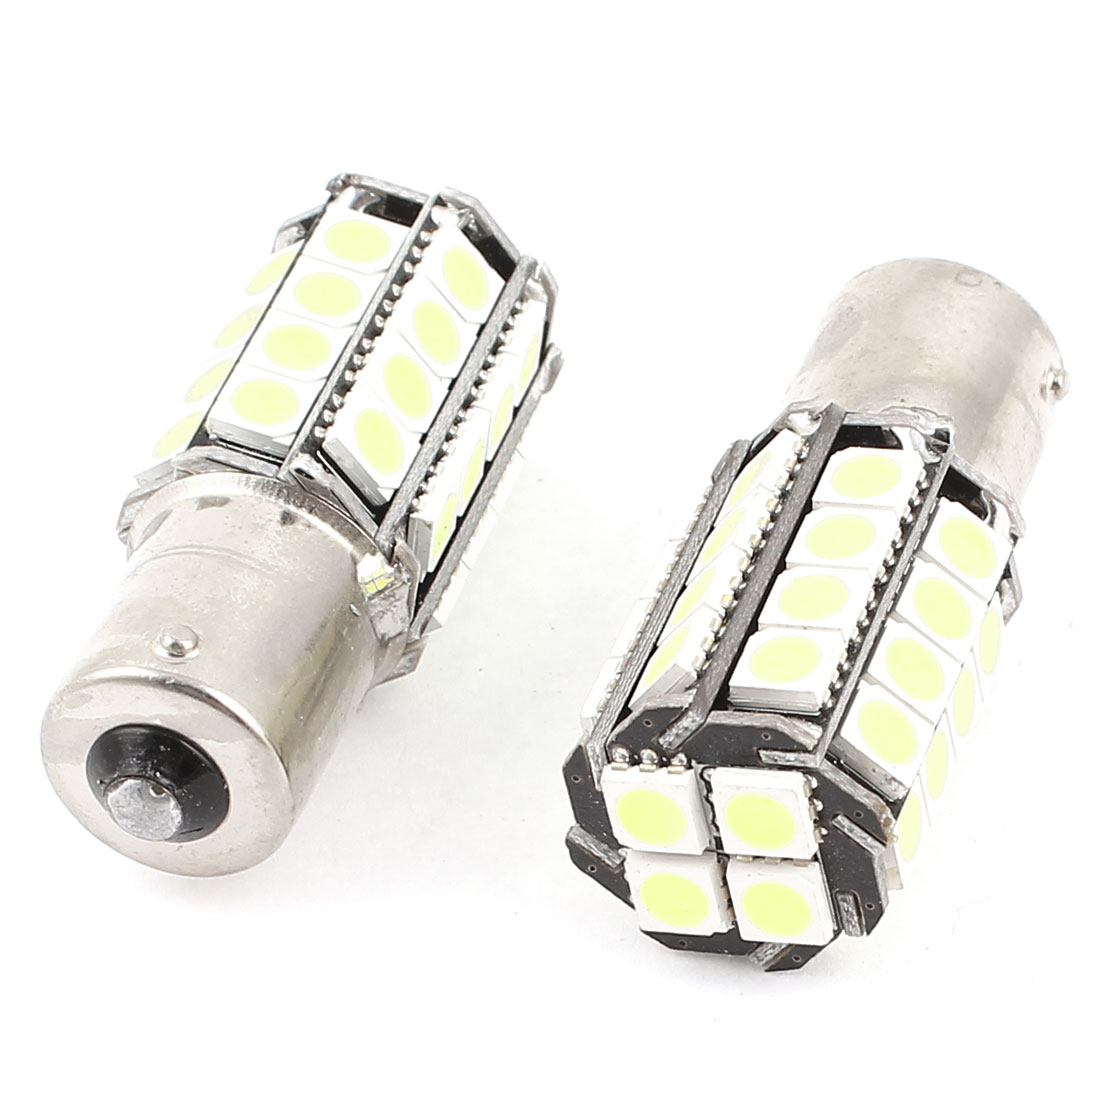 BA15S 1156 5050 SMD 36 LED Car Corner Tail Turn Signal Light White 1073 1259 2 Pcs